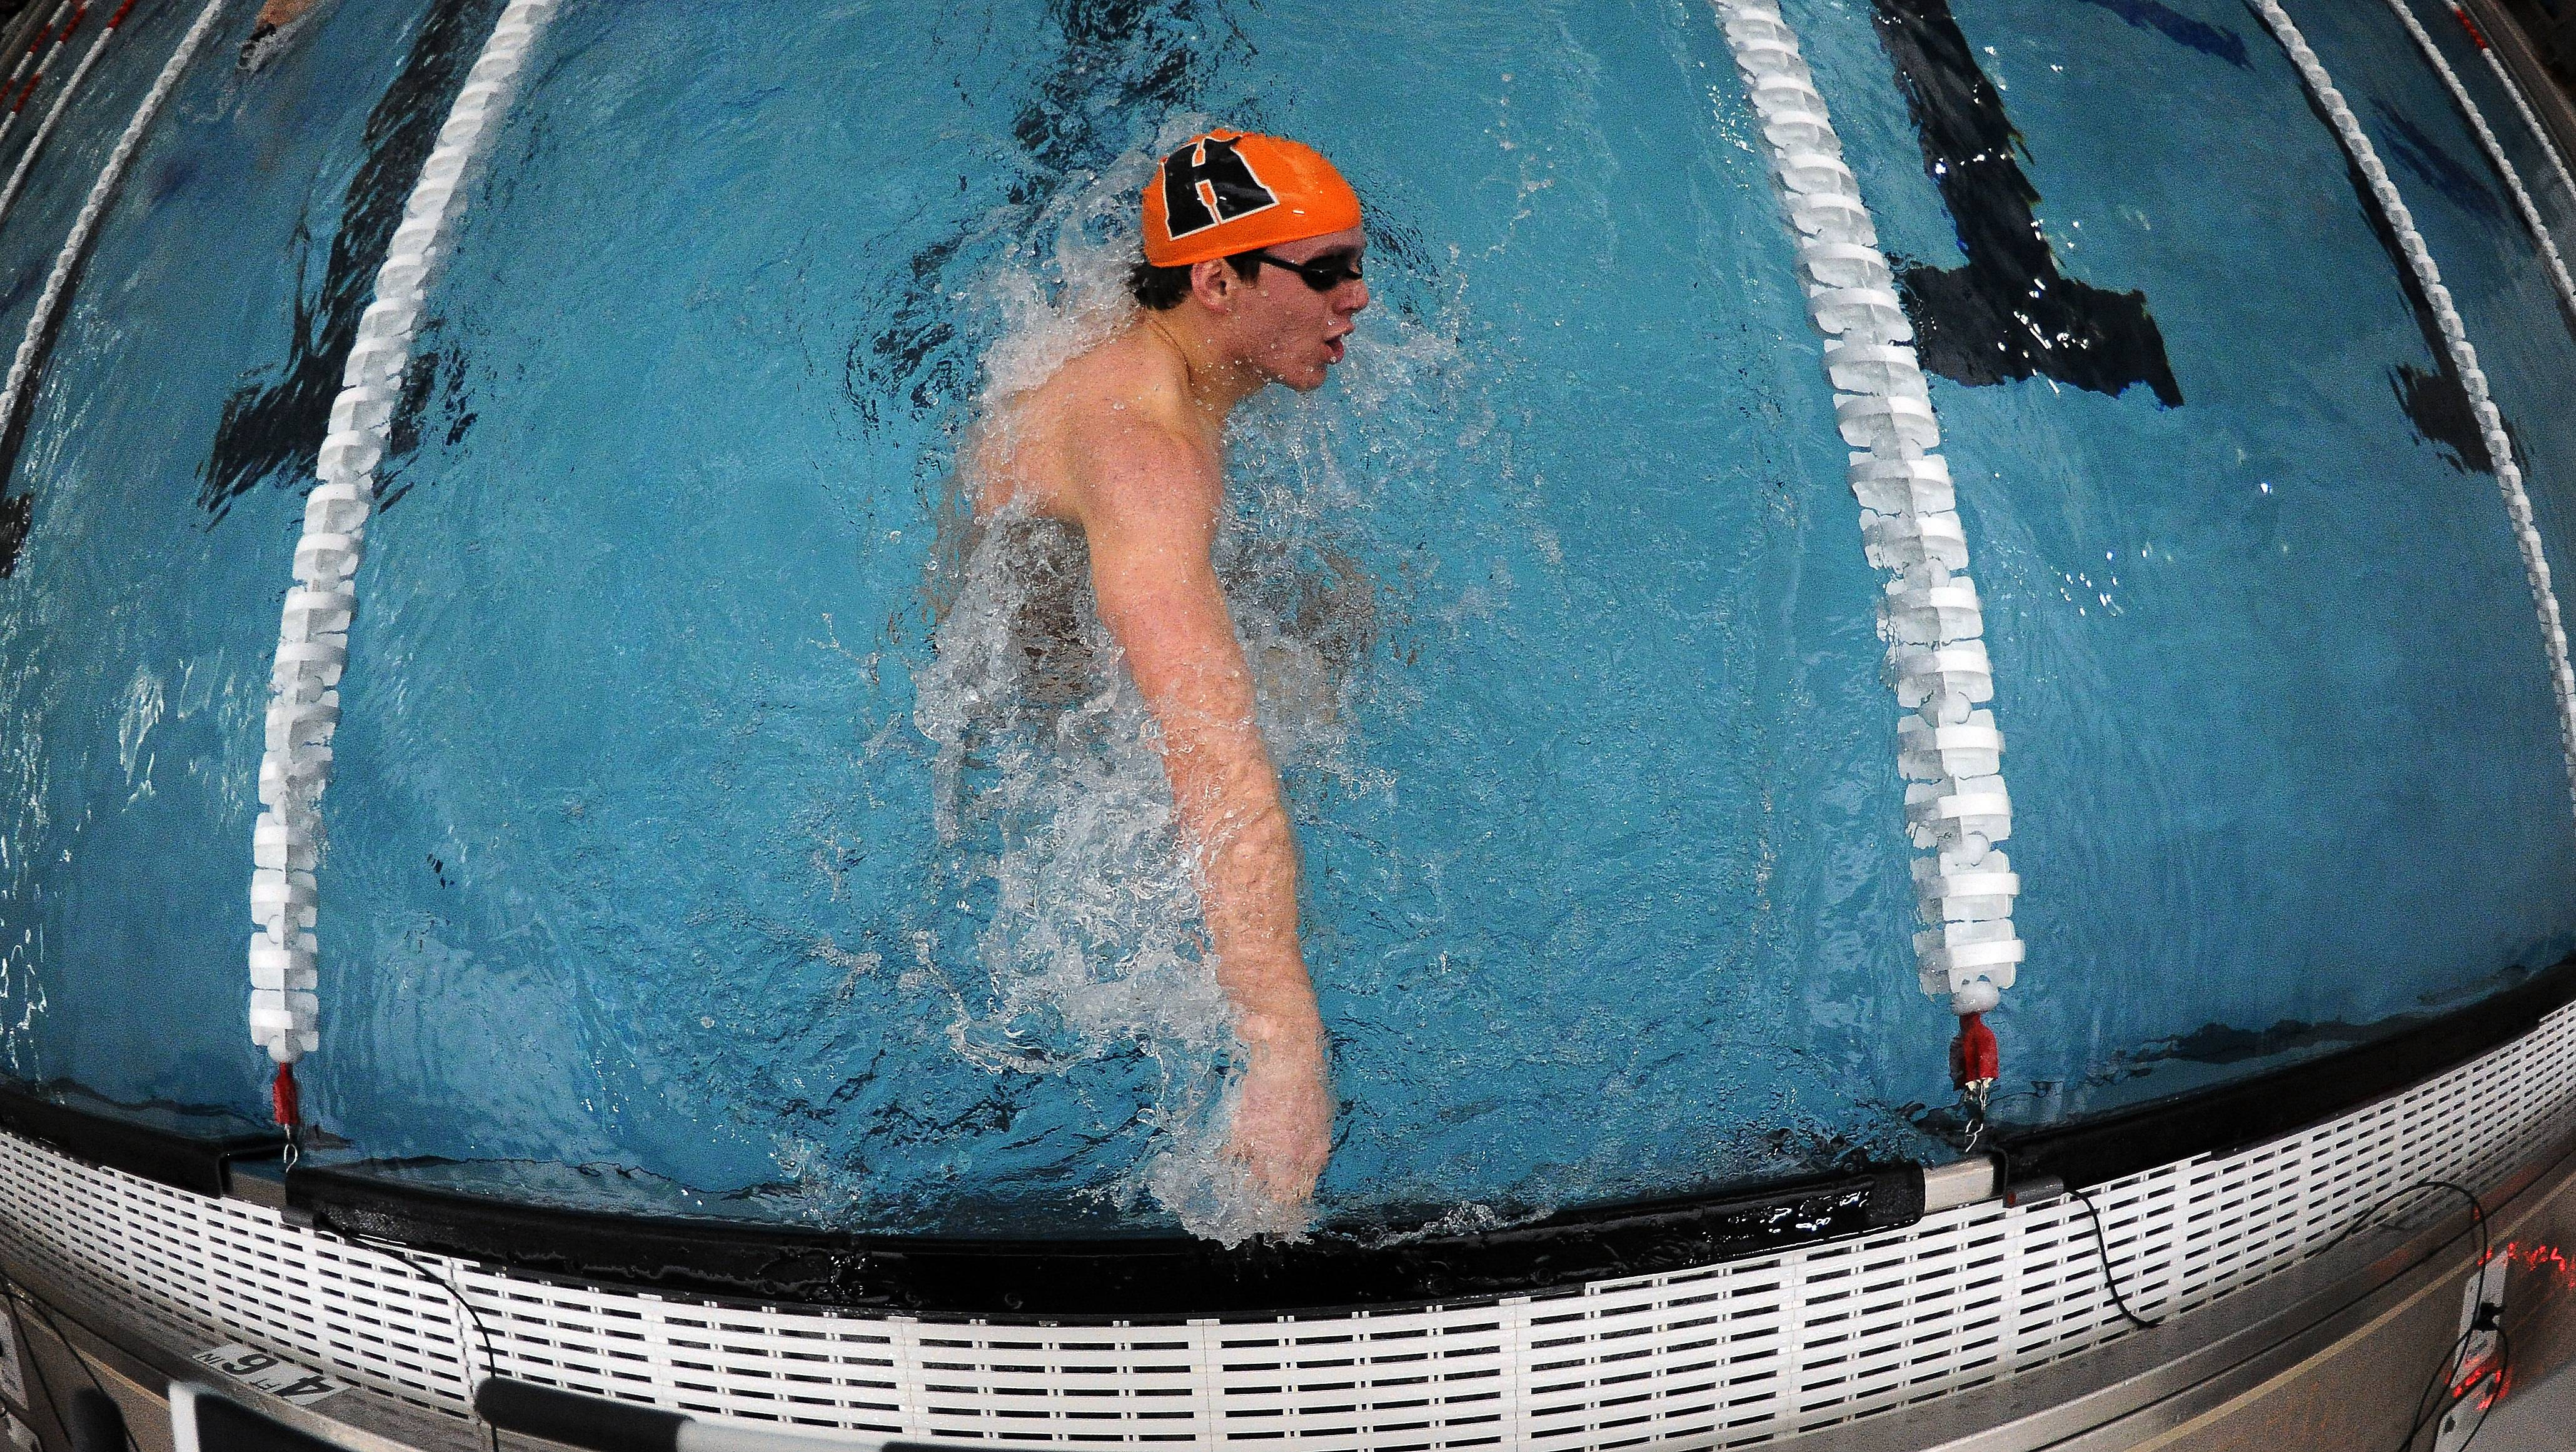 Hersey senior Michael Petro is after an individual state championship in this weekend's state meet at Evanston. He's the top seed in the 200 IM and No. 3 in the 100 fly.